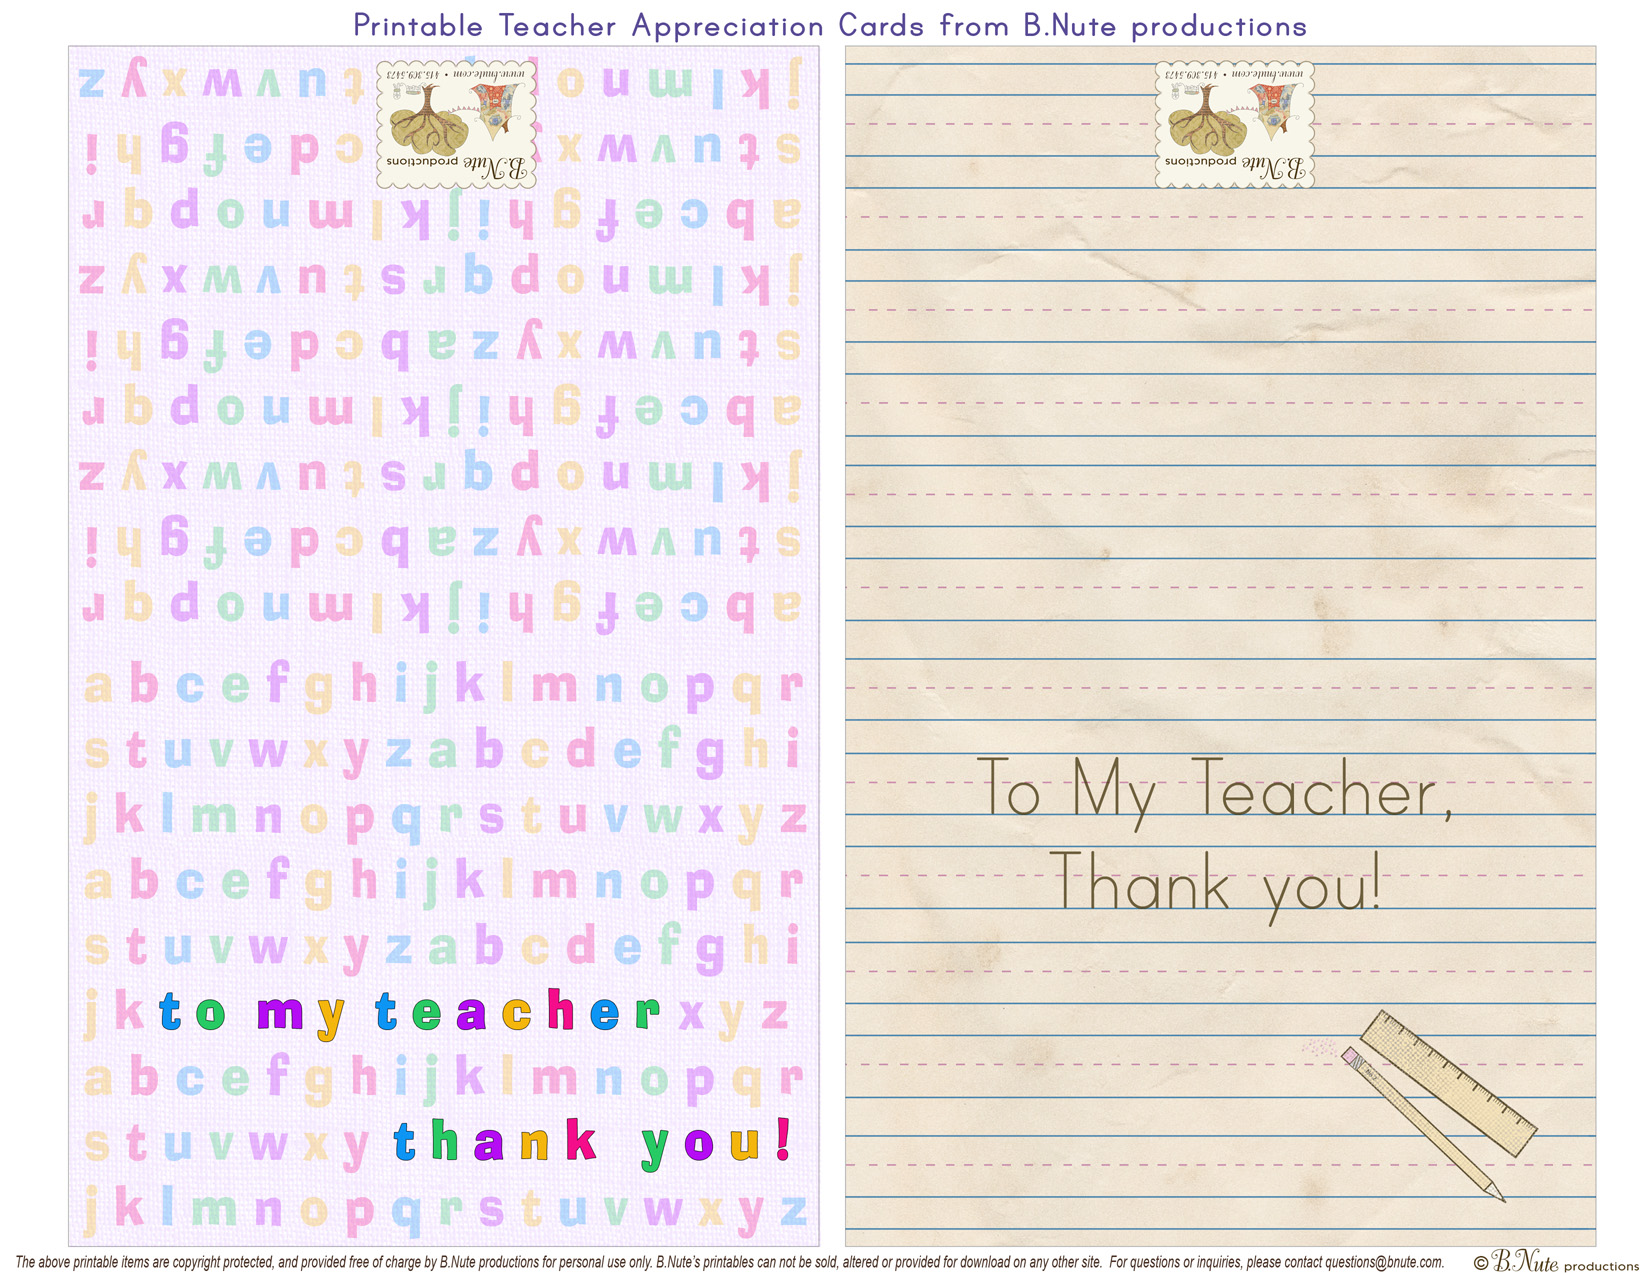 Bnute Productions Free Printable Teacher Appreciation Cards